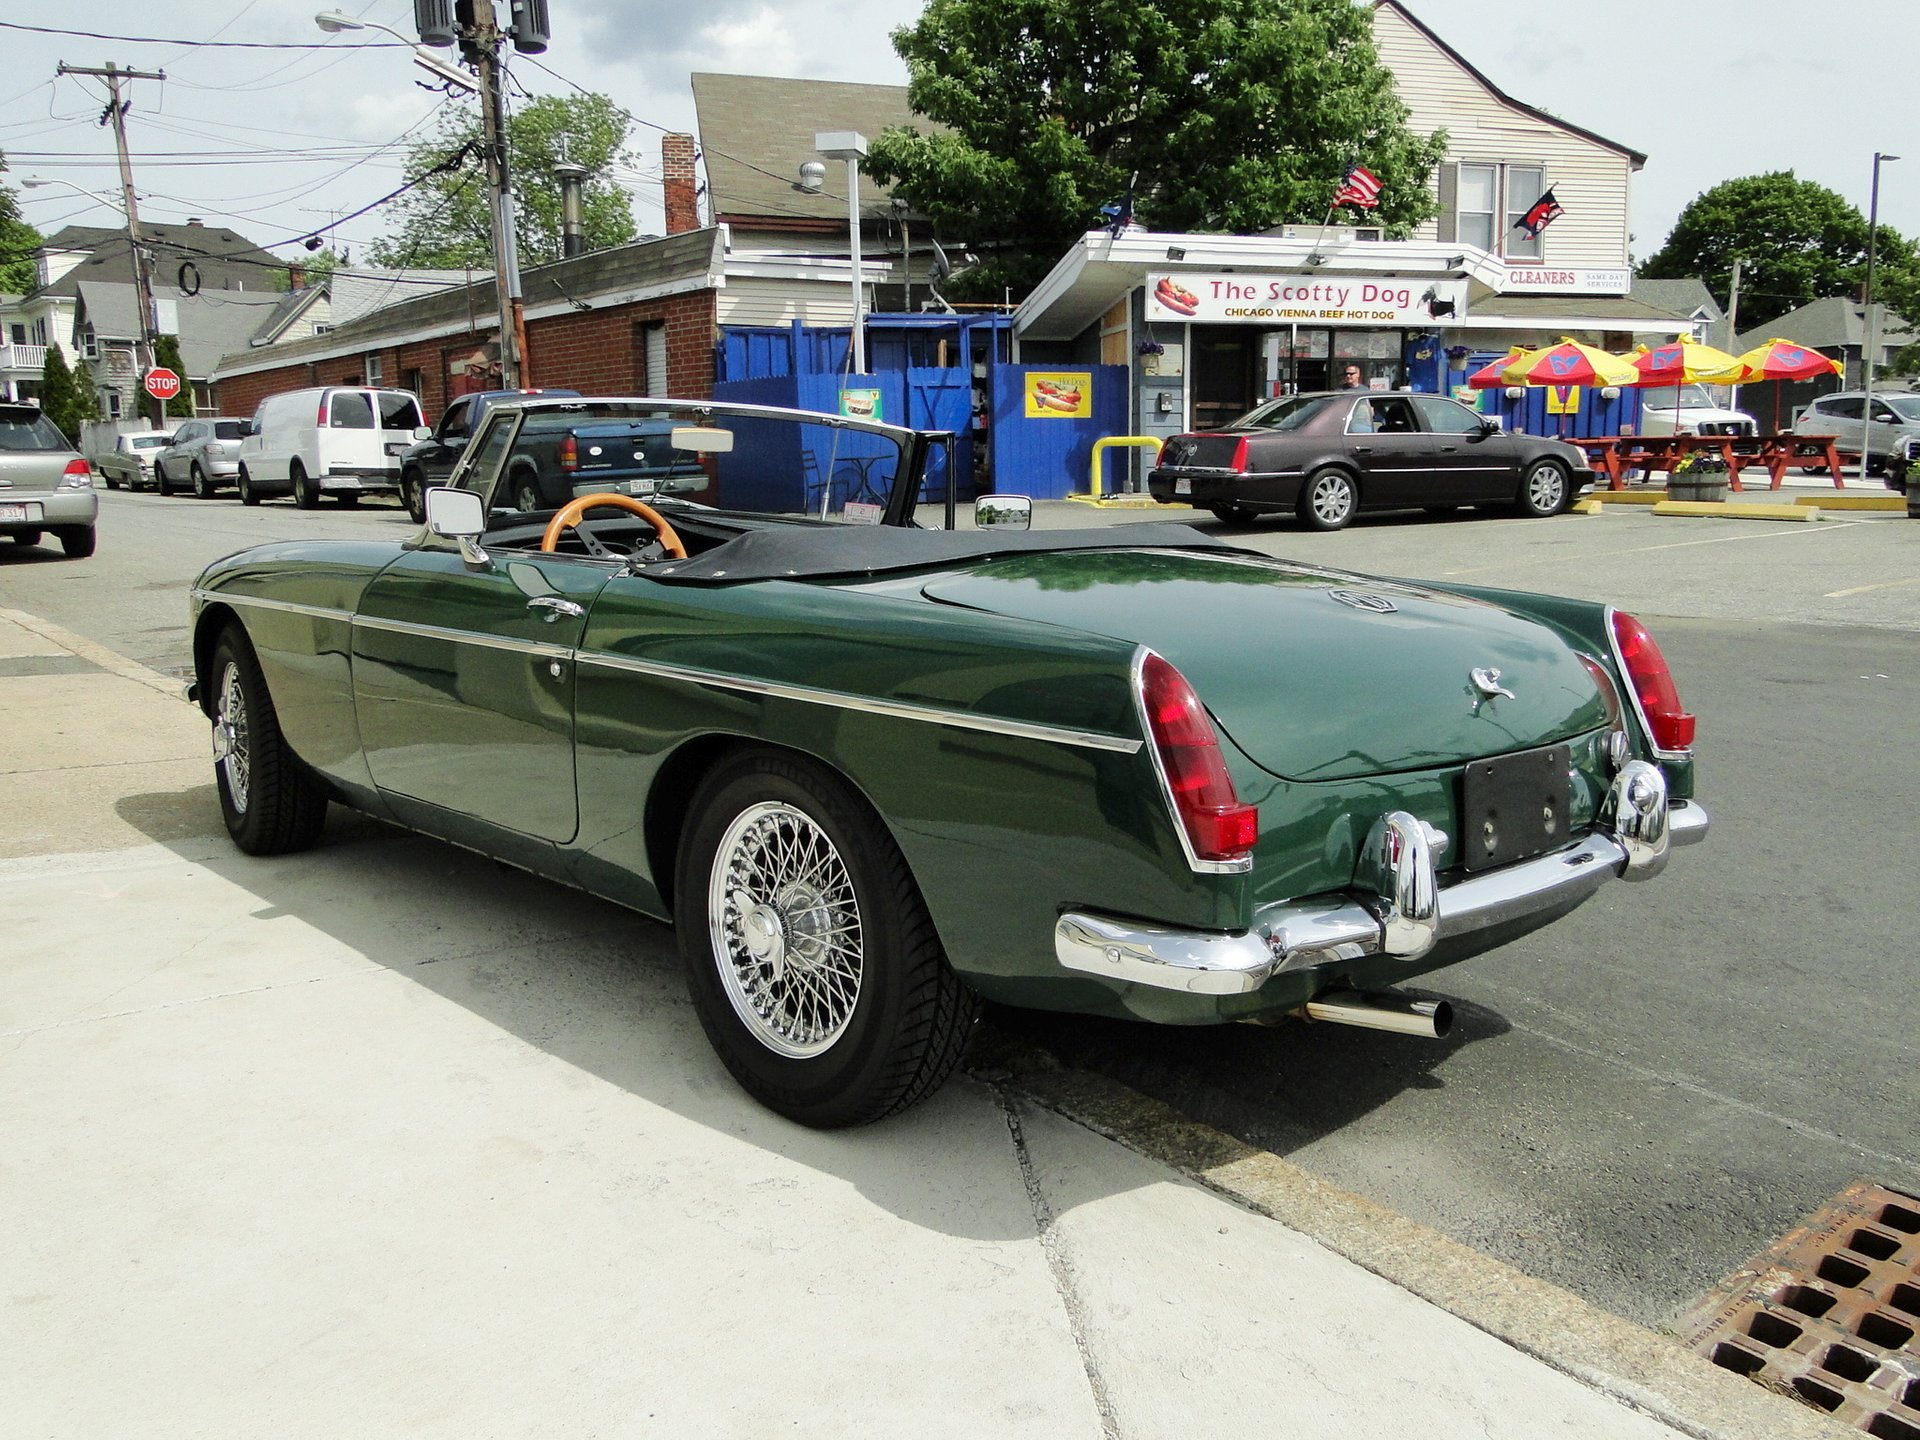 1966 Mg Mgb Legendary Motors Classic Cars Muscle Cars Hot Rods Antique Cars Beverly Ma